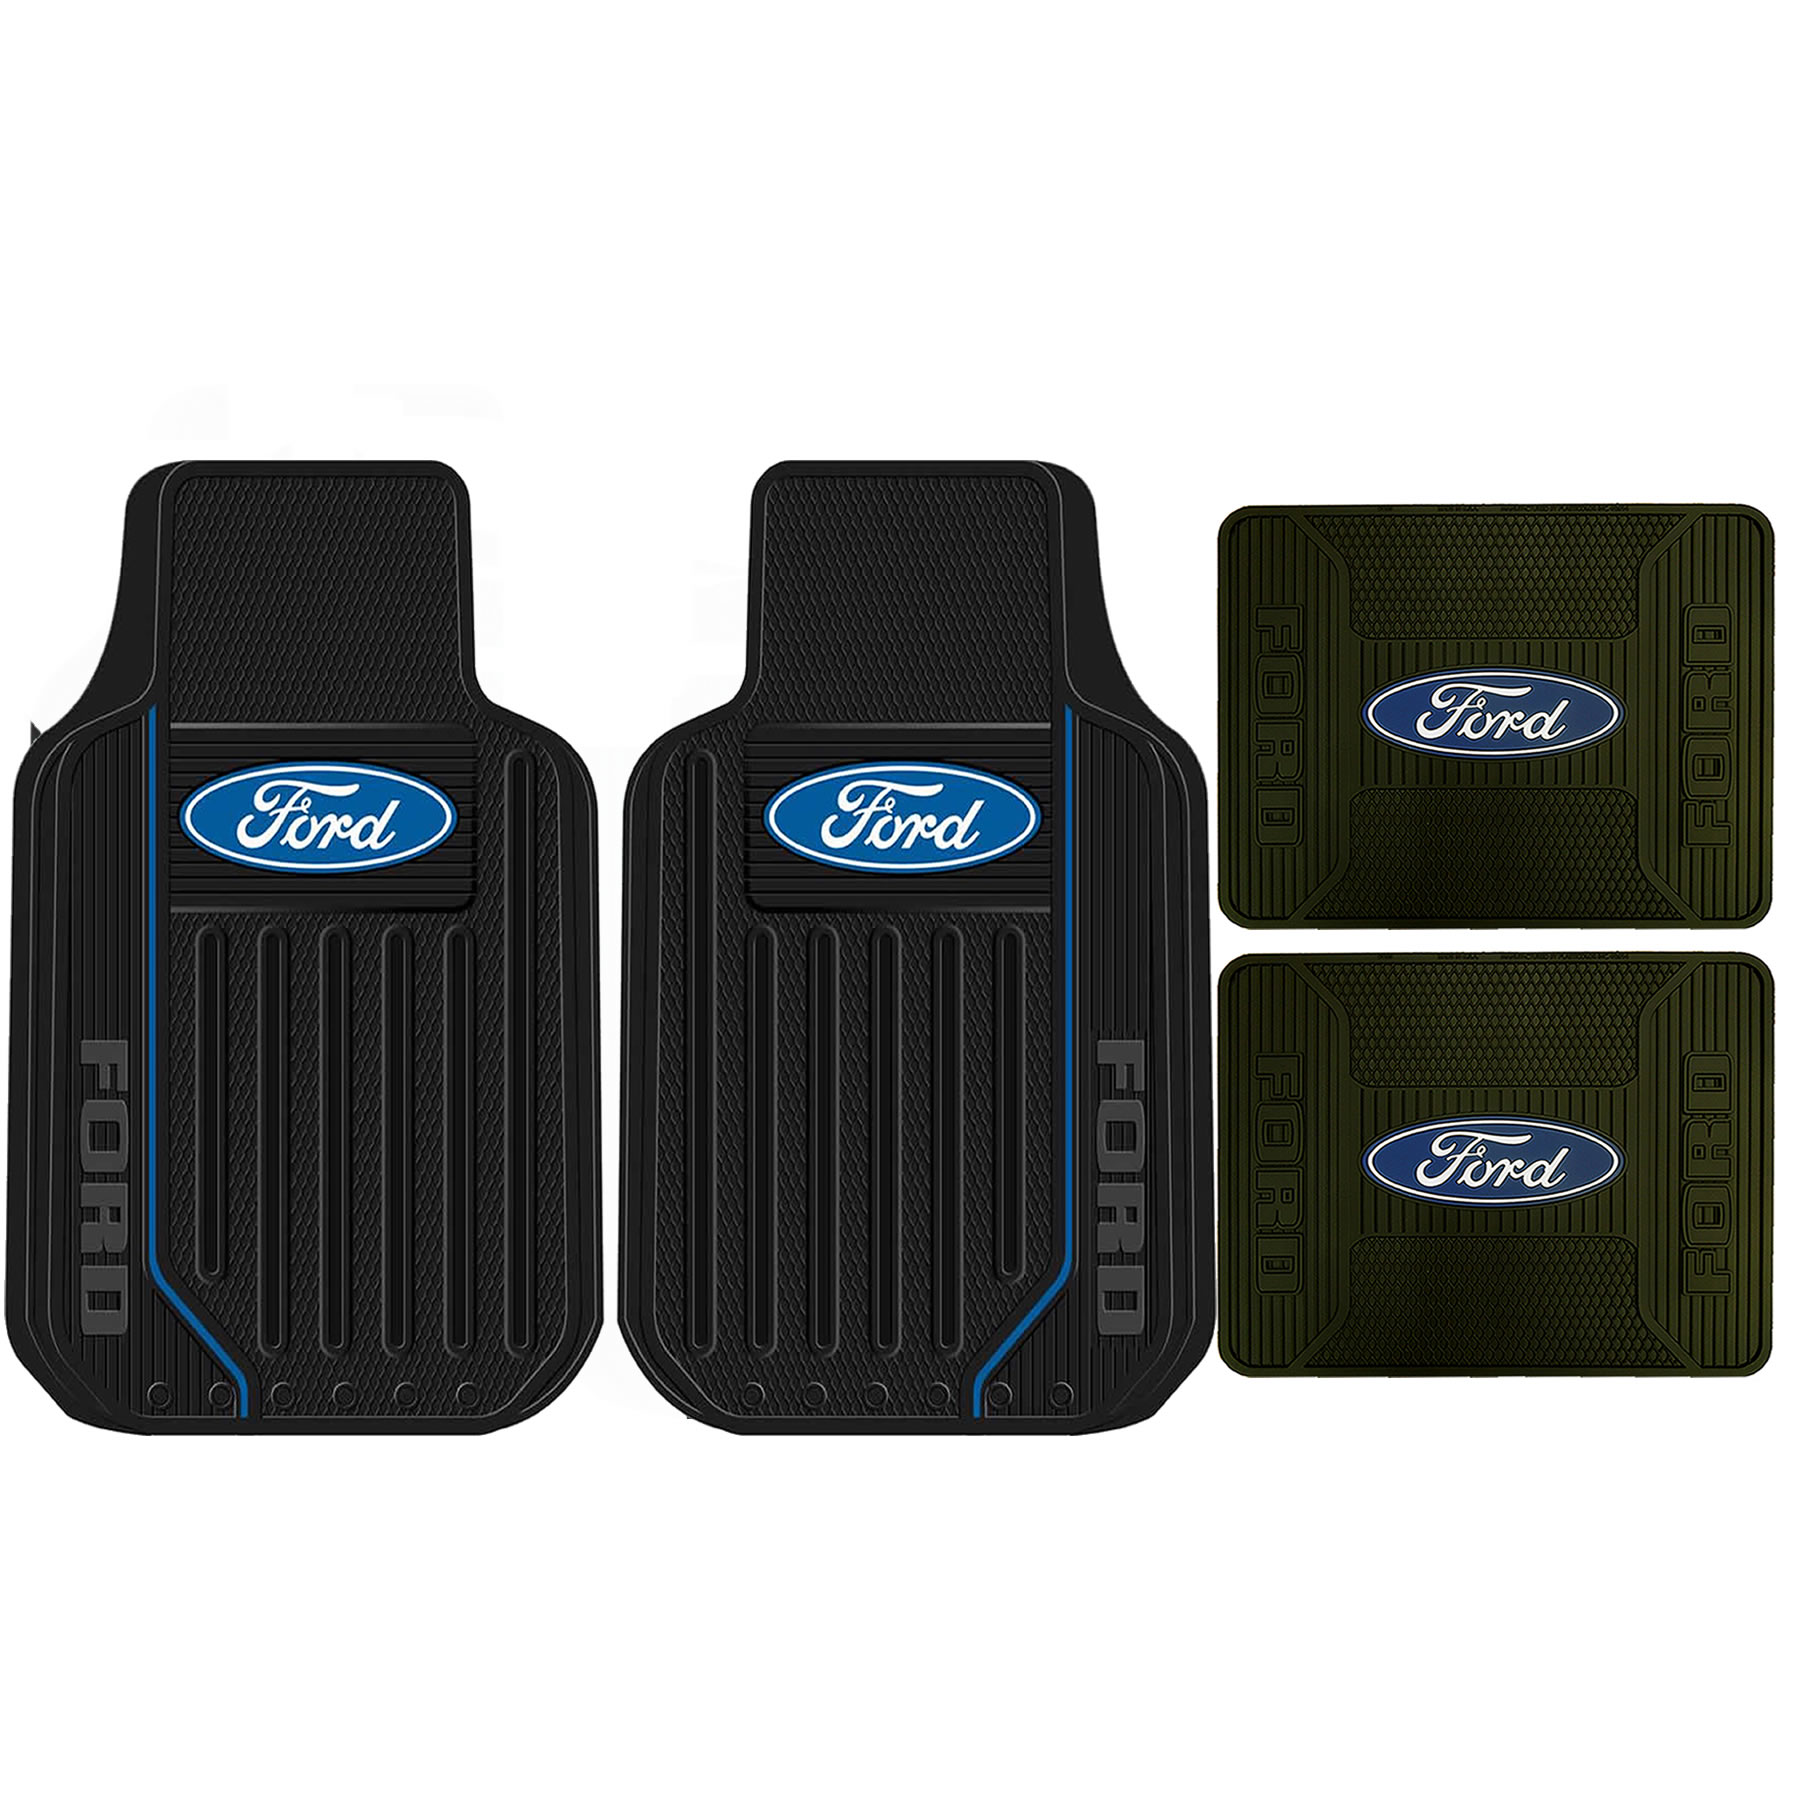 Rubber floor mats with ford logo #2